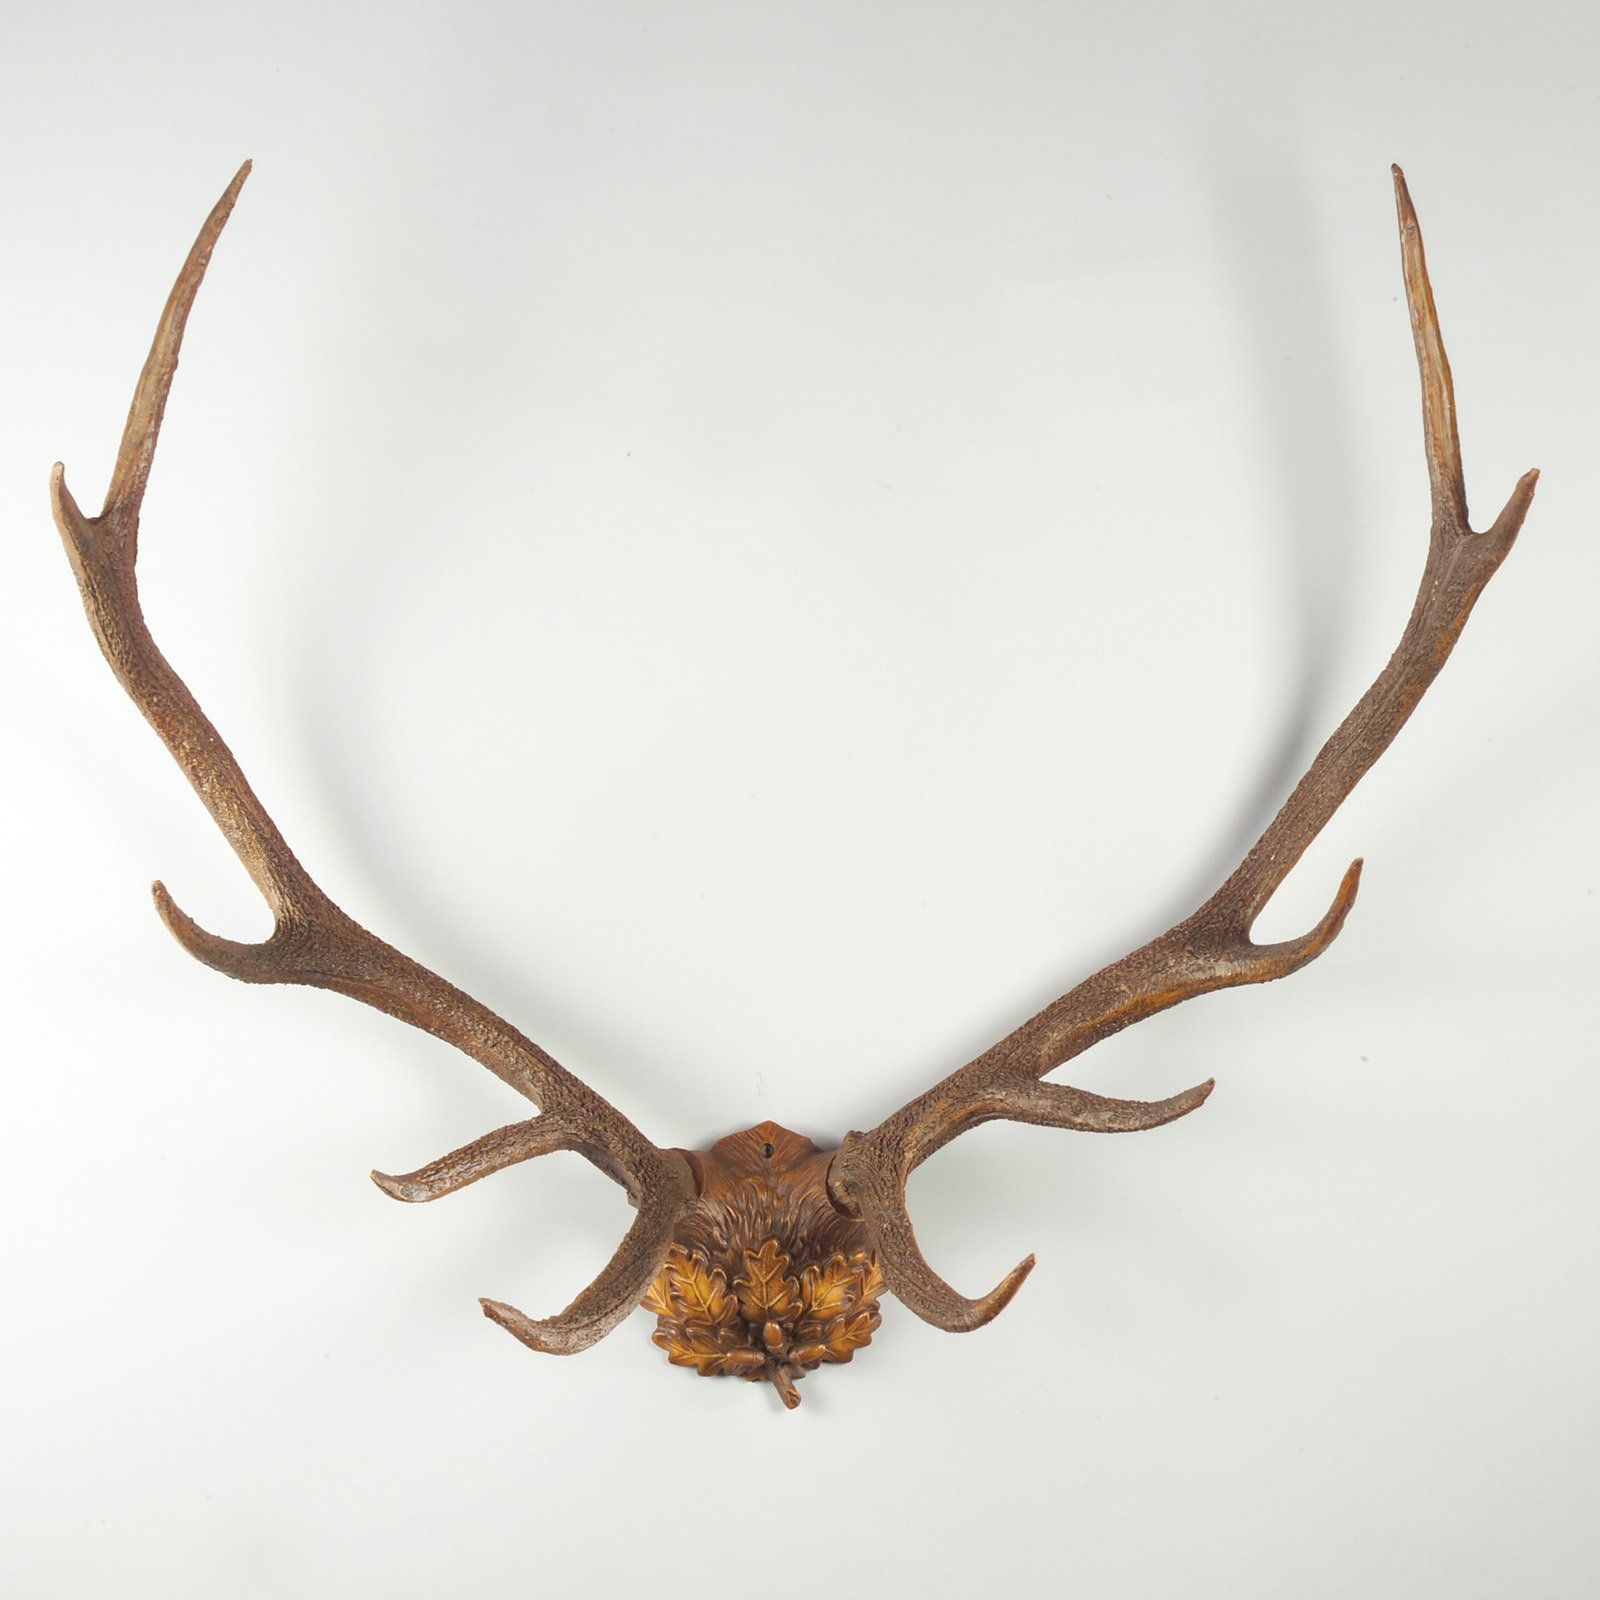 $309 Oklahoma Casting Oak Leaf Antlers Wall Art   Mount A Ten Point Buck  Without Your Taxidermist   The Oklahoma Casting Oak Leaf Antlers Wall Art  Is A ...